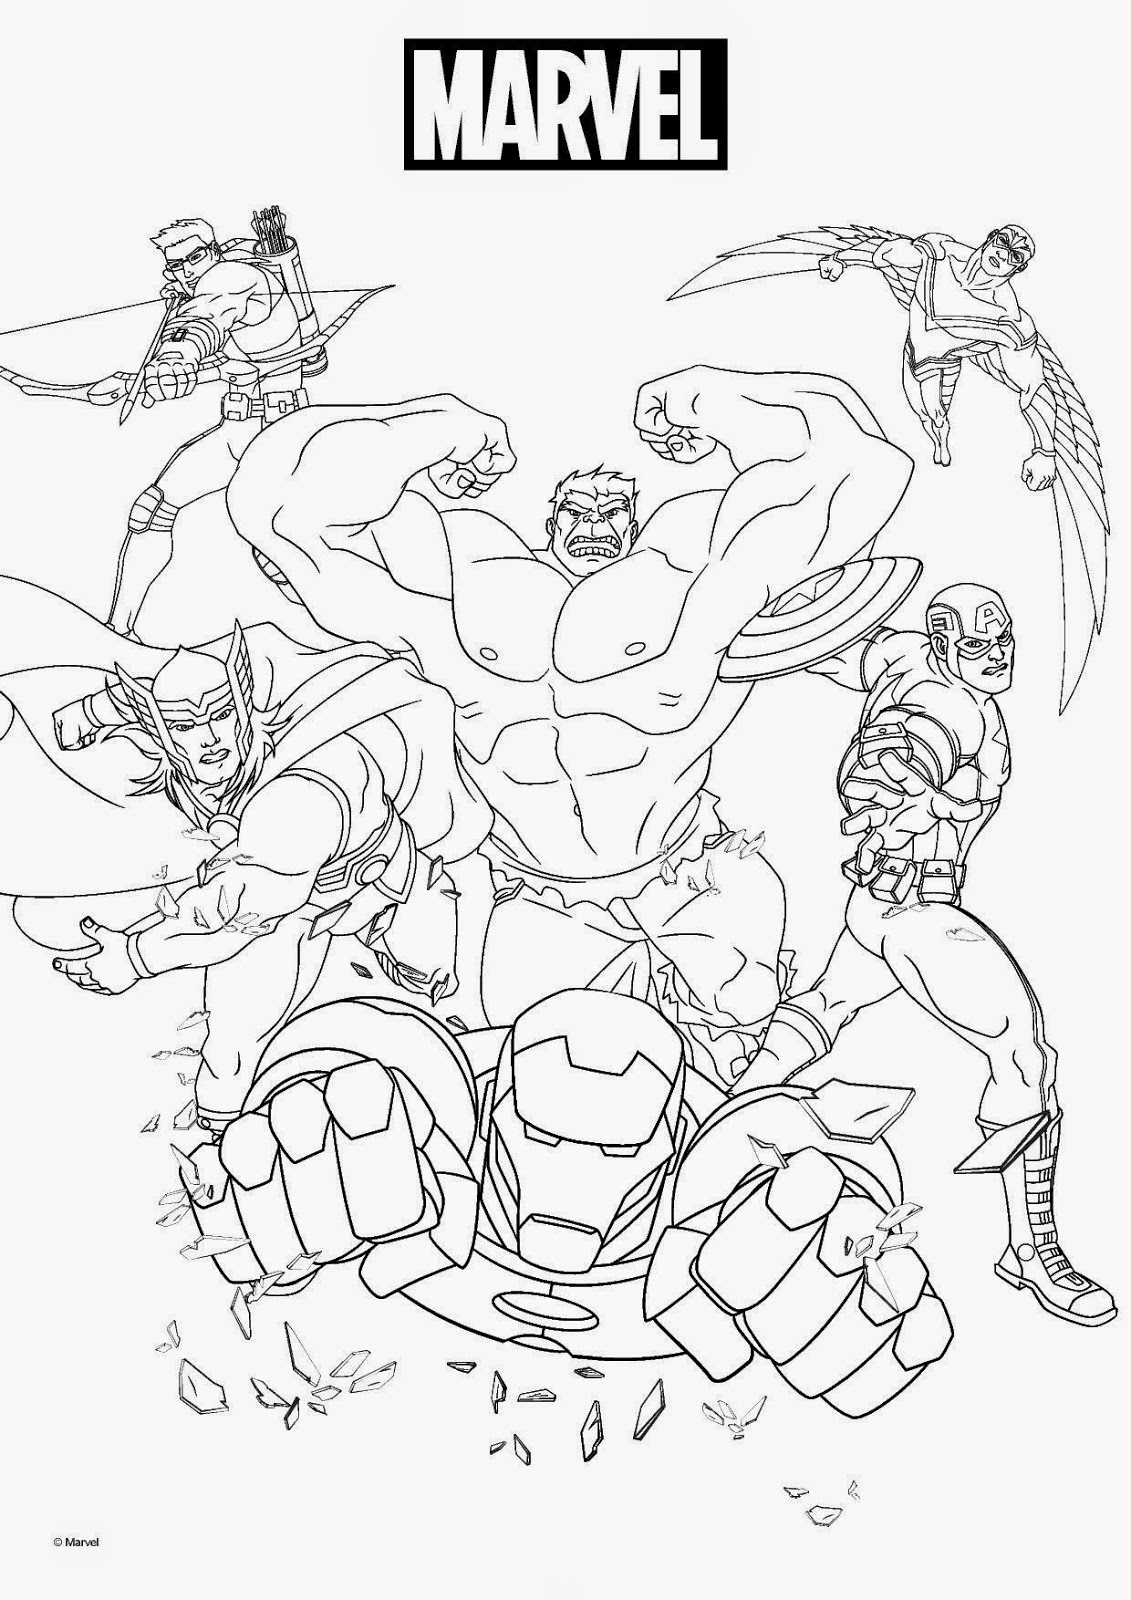 Marvel Coloring Pages - Best Coloring Pages For Kids